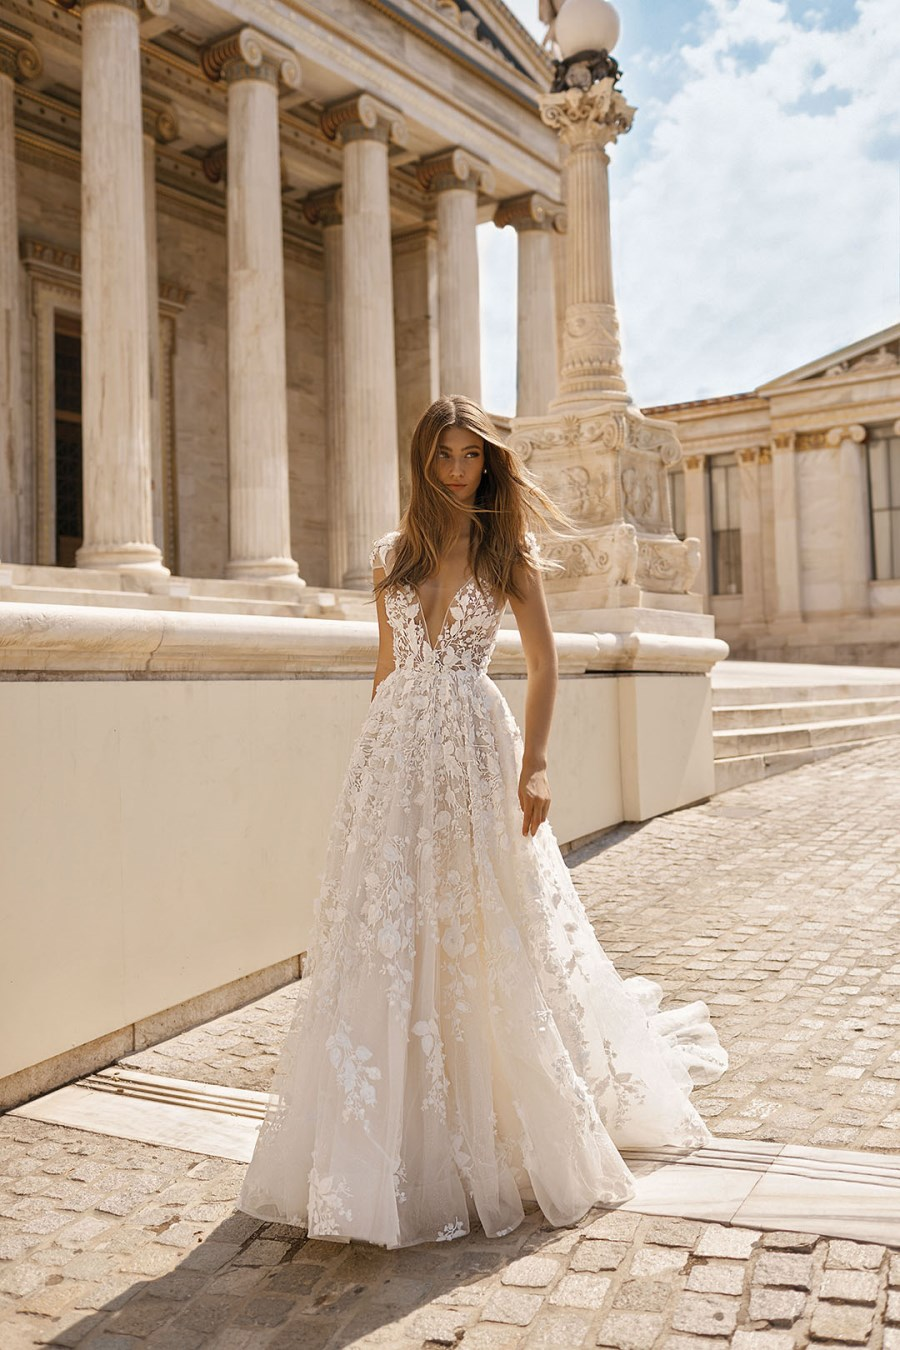 berta-wedding-dress-2019-1 (12)_2